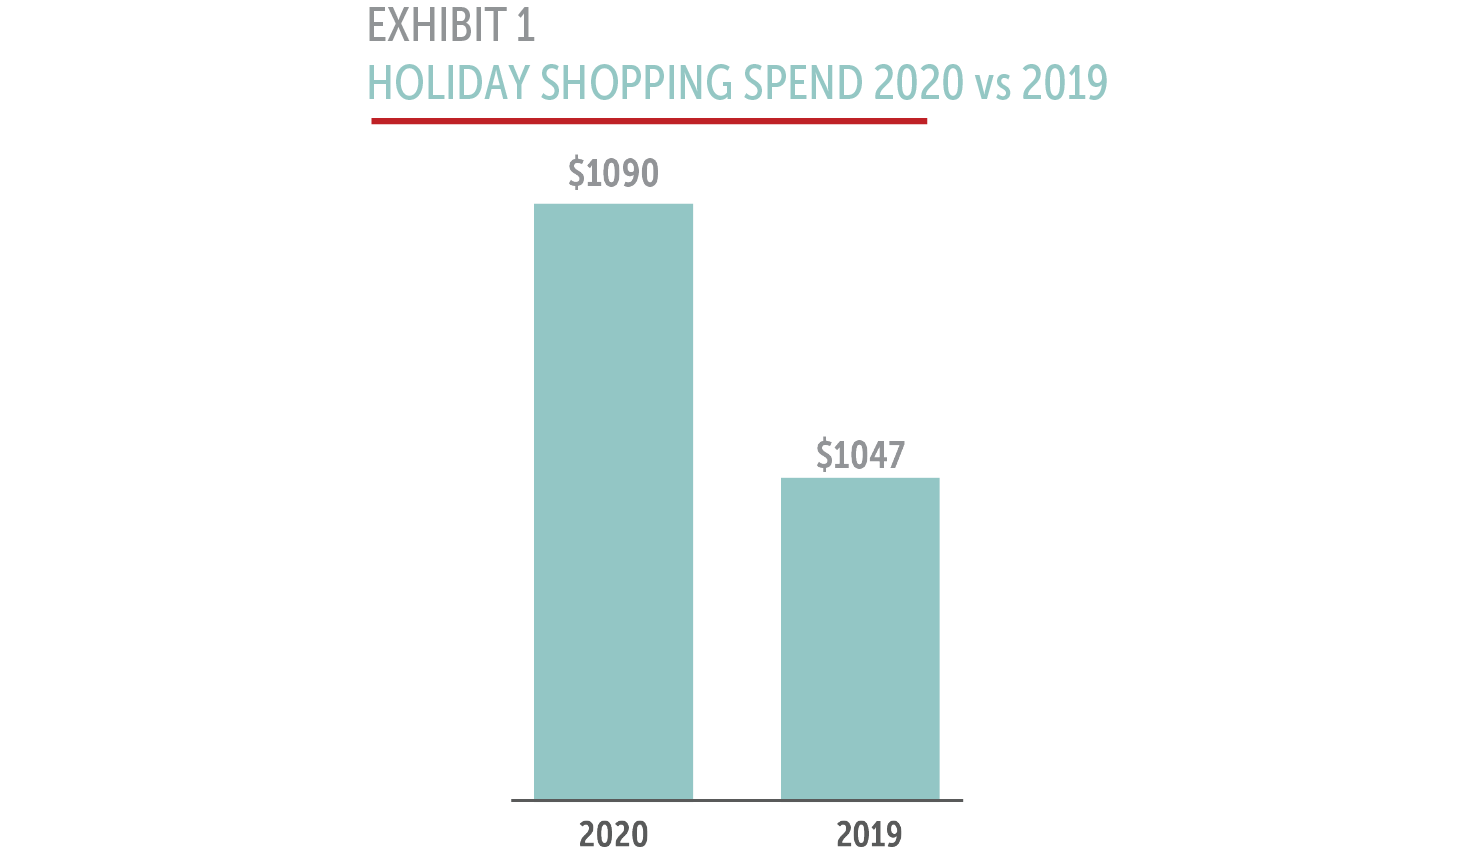 Holiday shopping spend levels 2020 vs 2019